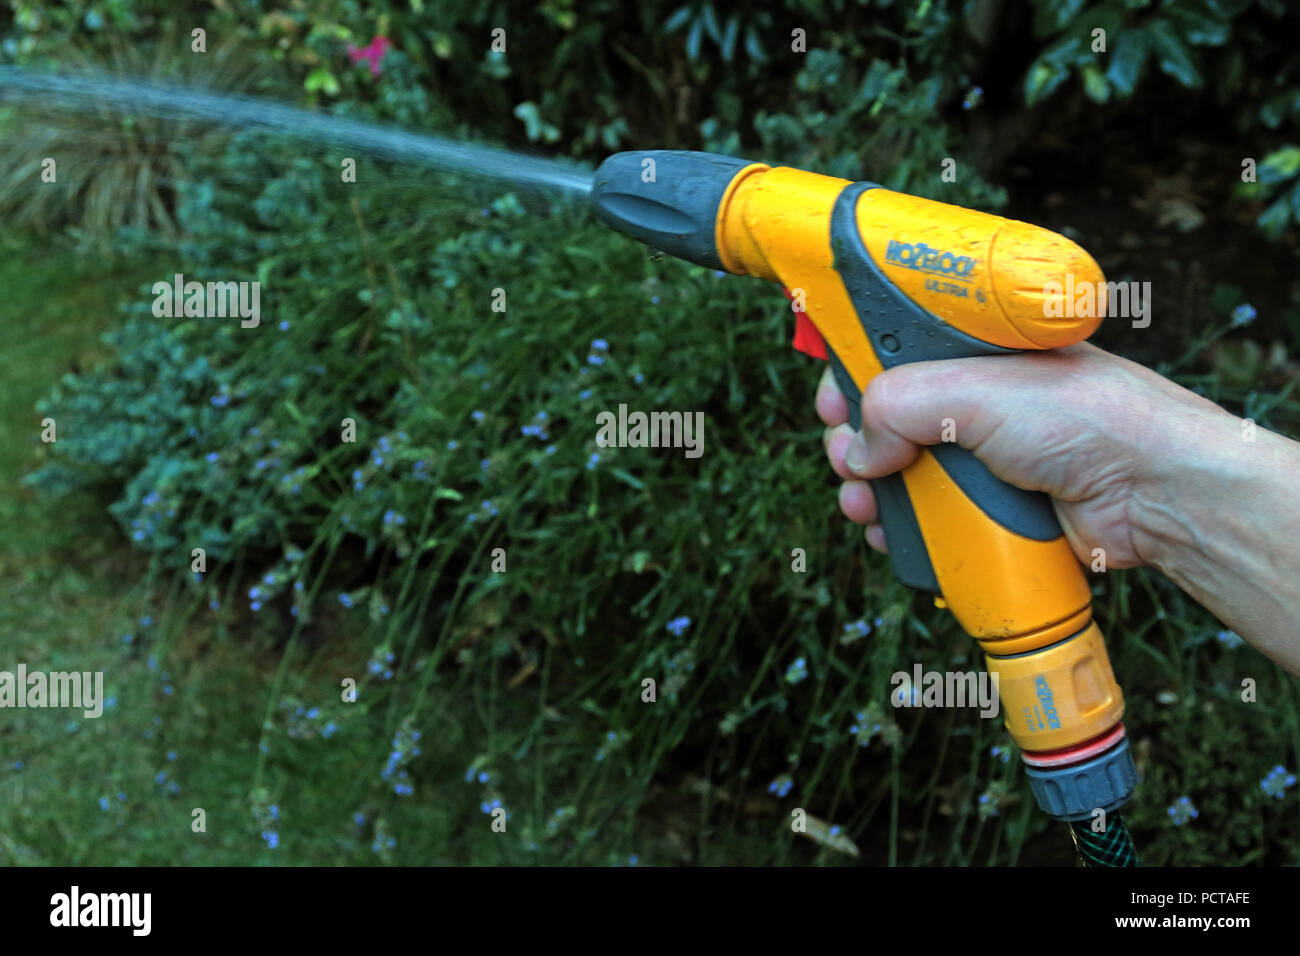 Woman resident, using a hoselock hosepipe, in a garden, summertime - Stock Image